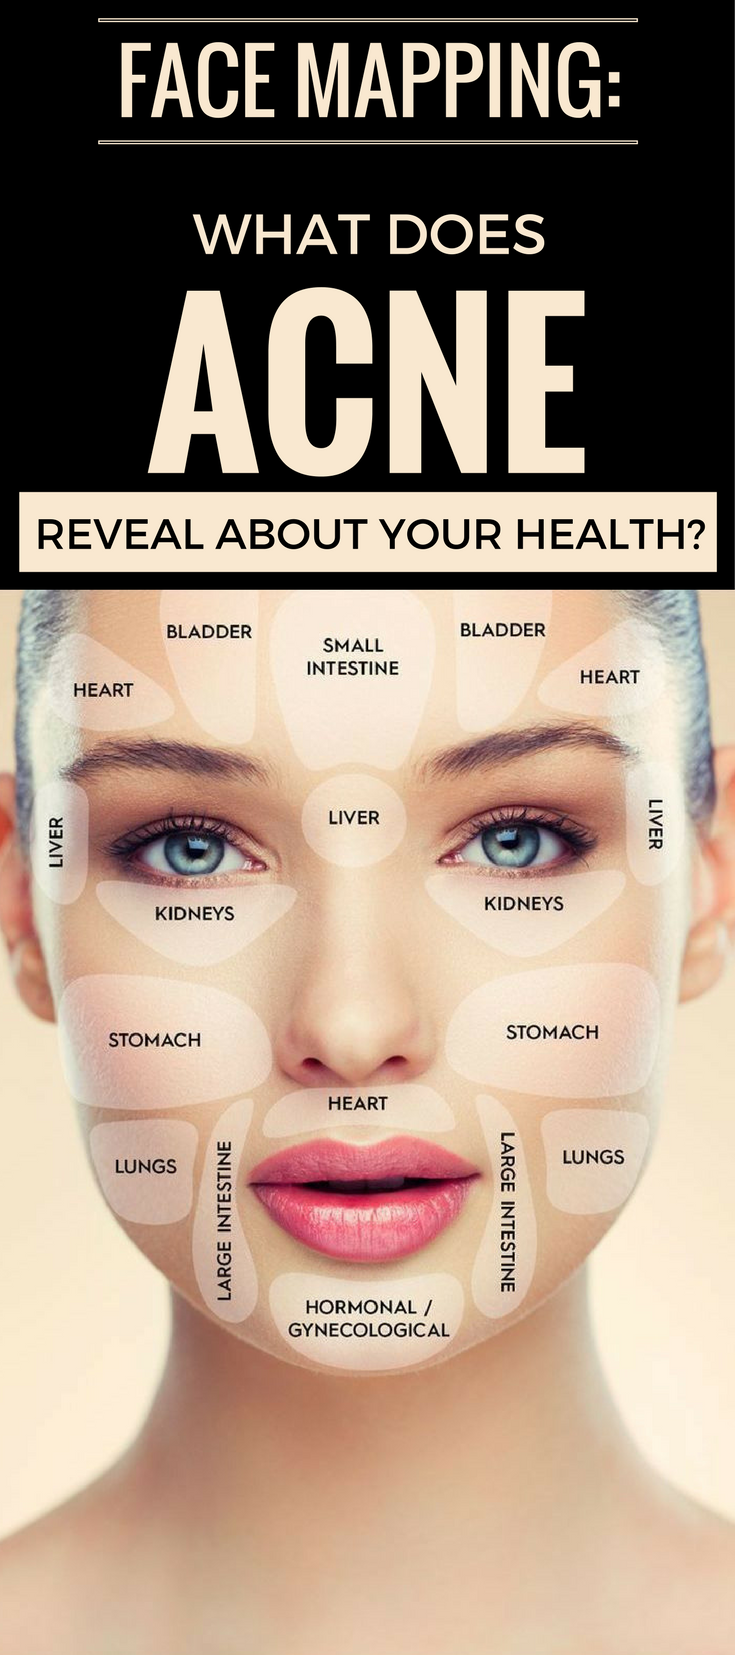 medium resolution of acne diagram face easy wiring diagrams pimples on head face mapping what does acne reveal about